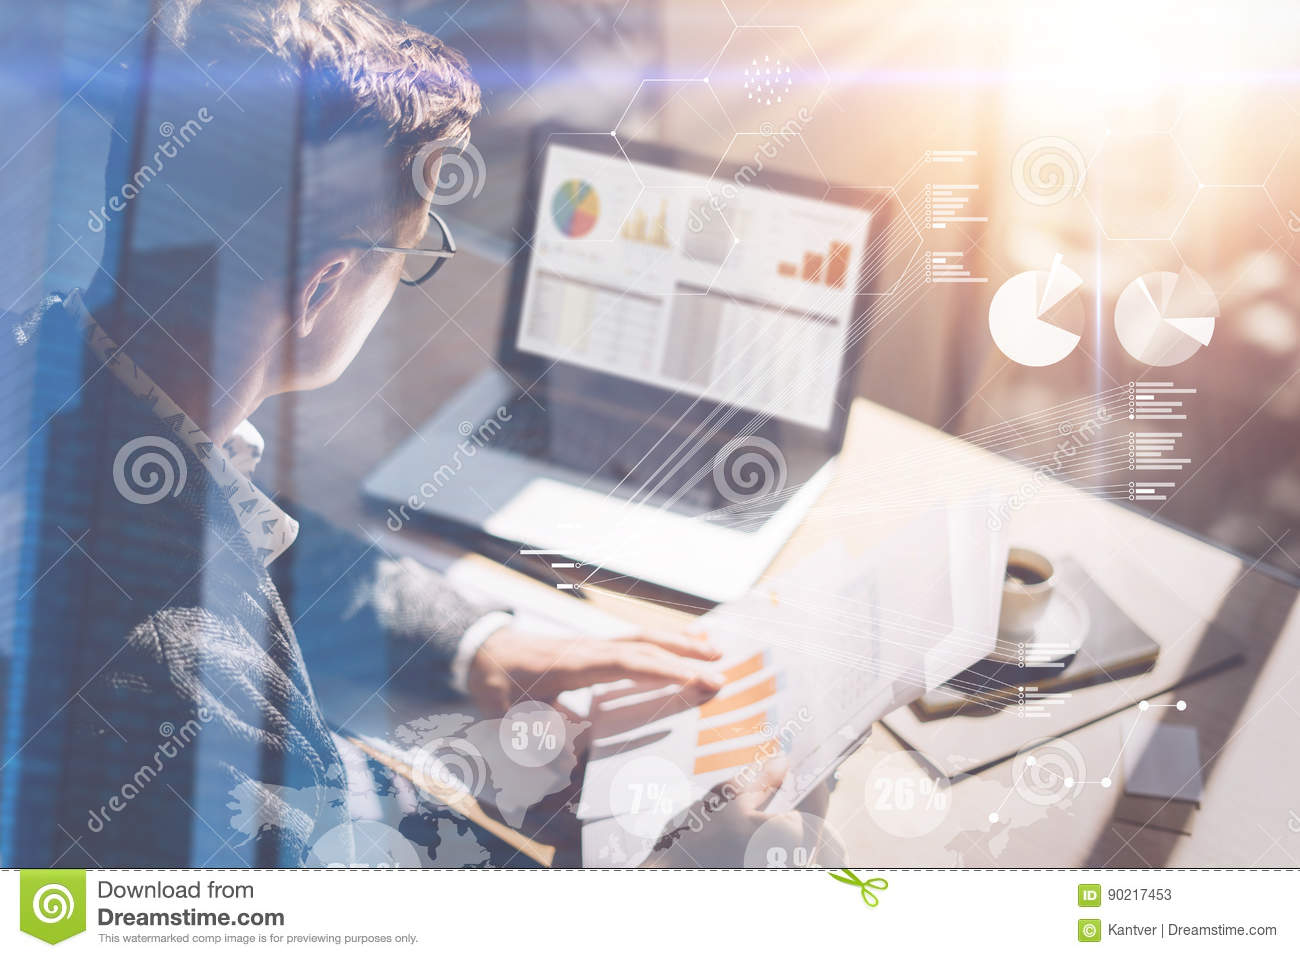 Young businessman analyze stock report on notebook screen.Concept of digital screen,virtual connection icon,diagram